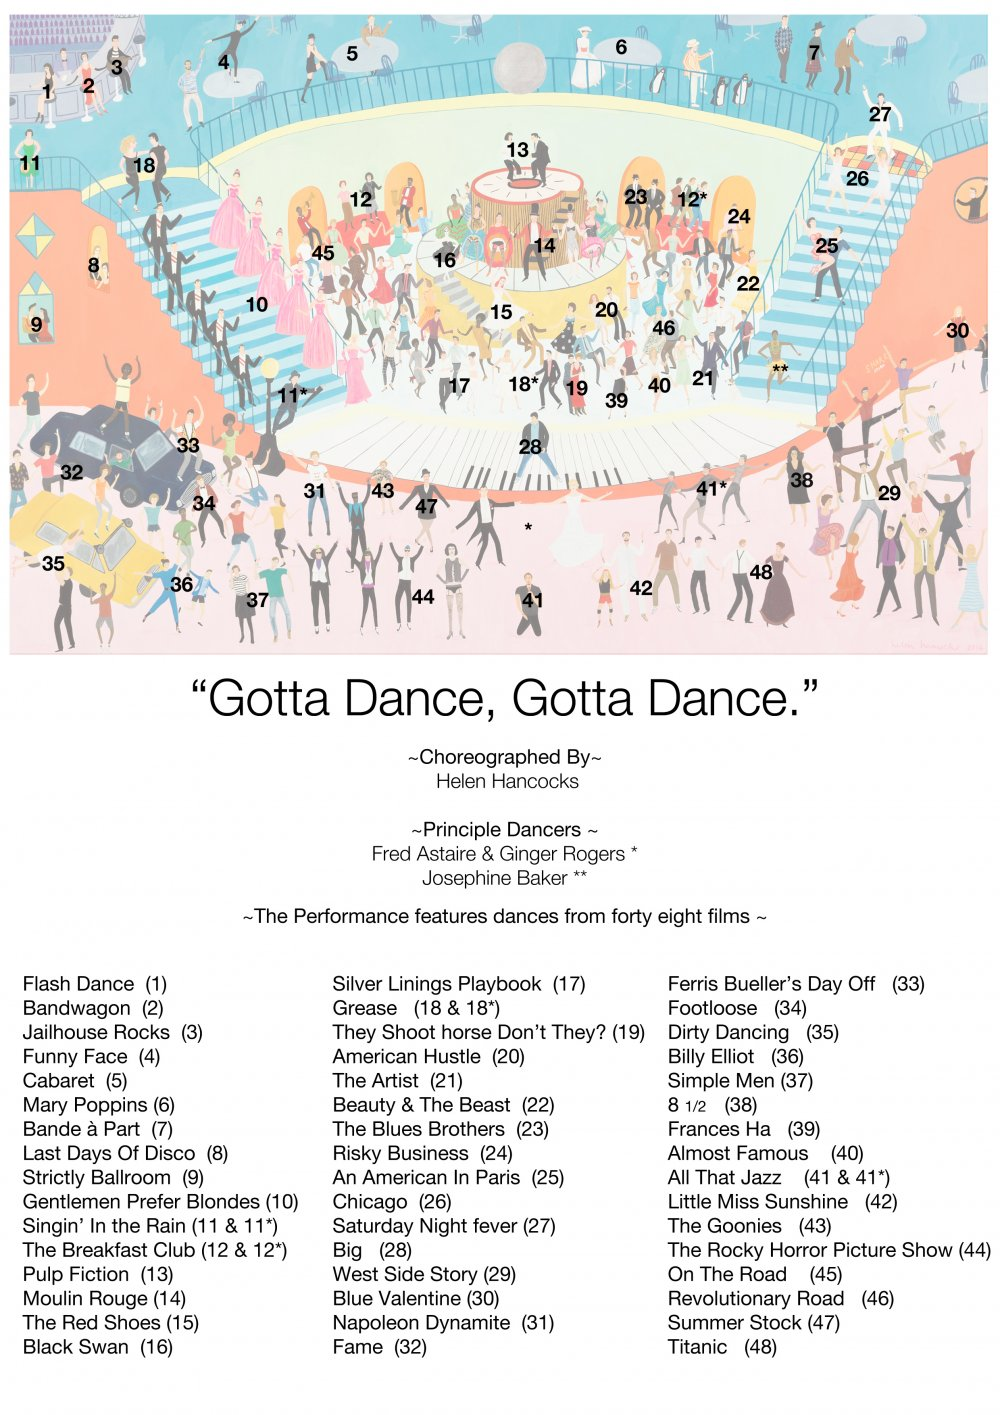 Gotta Dance season illustration key